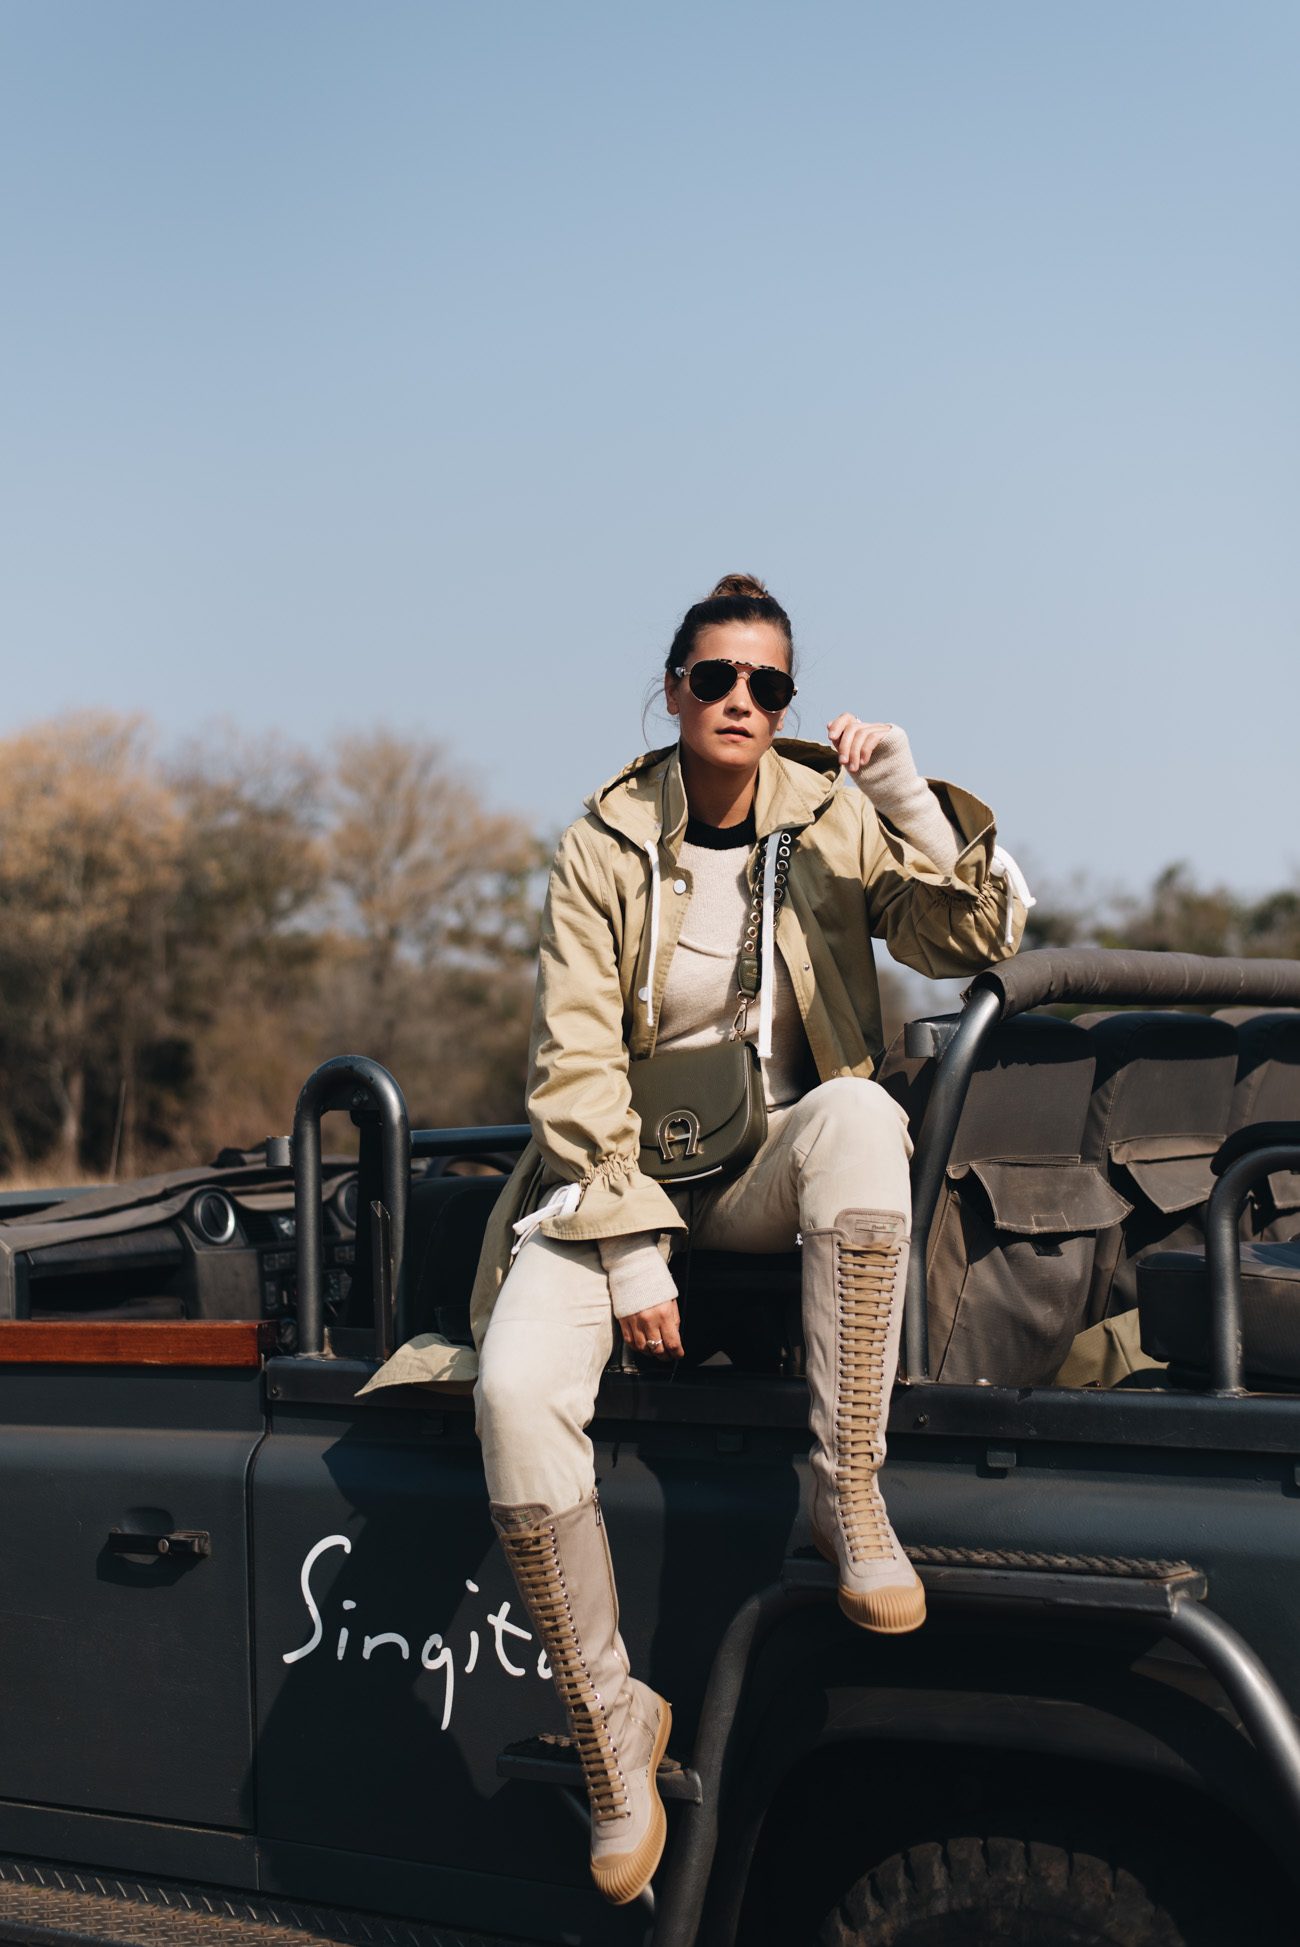 safari-krüger-nationalpark-singita-editorial-shooting-südafrika-nina-schwichtenberg-fashiioncarpet